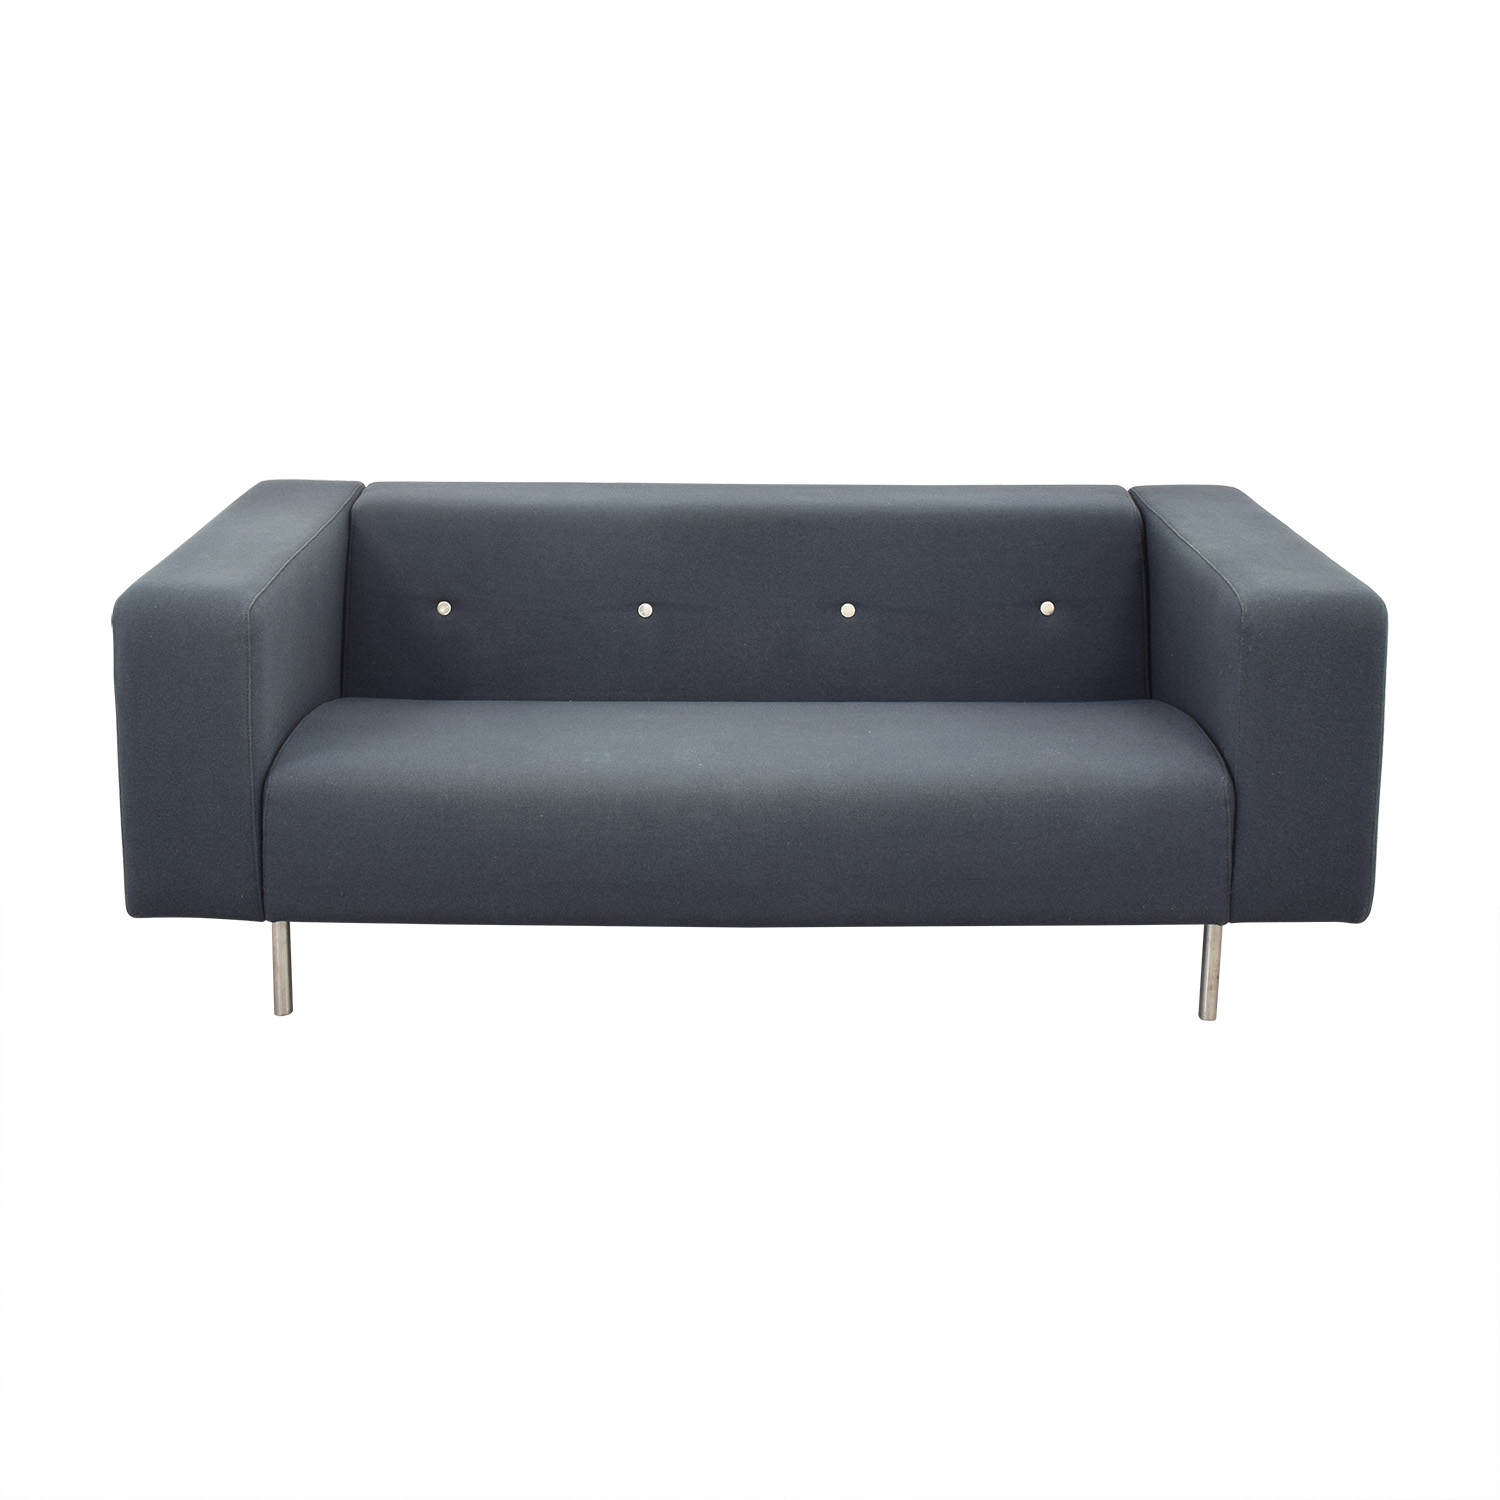 buy Moooi Bottoni Double Seater Moooi